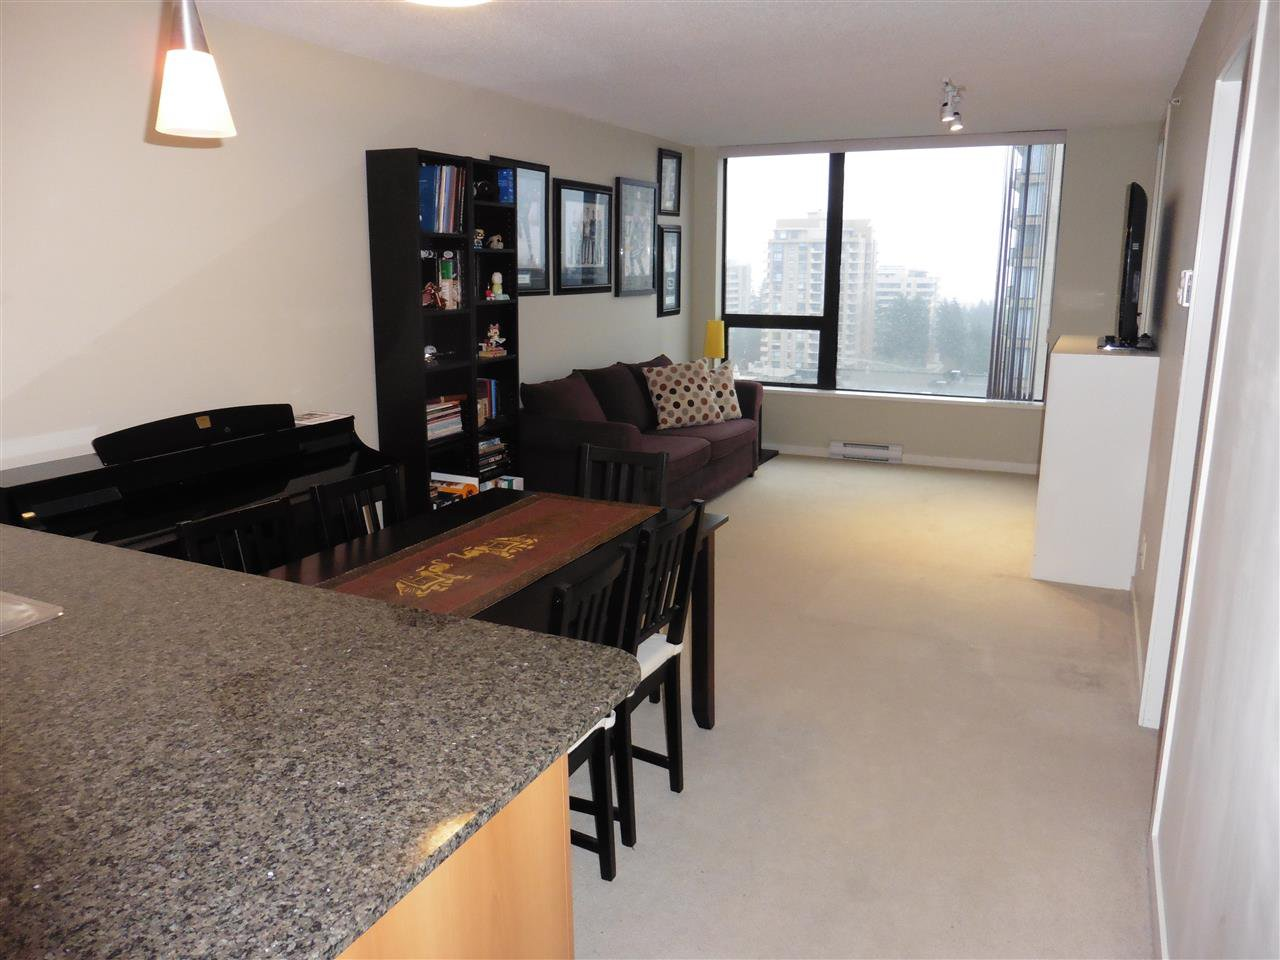 """Photo 5: Photos: 1101 7108 COLLIER Street in Burnaby: Highgate Condo for sale in """"ARCADIA WEST"""" (Burnaby South)  : MLS®# R2317674"""